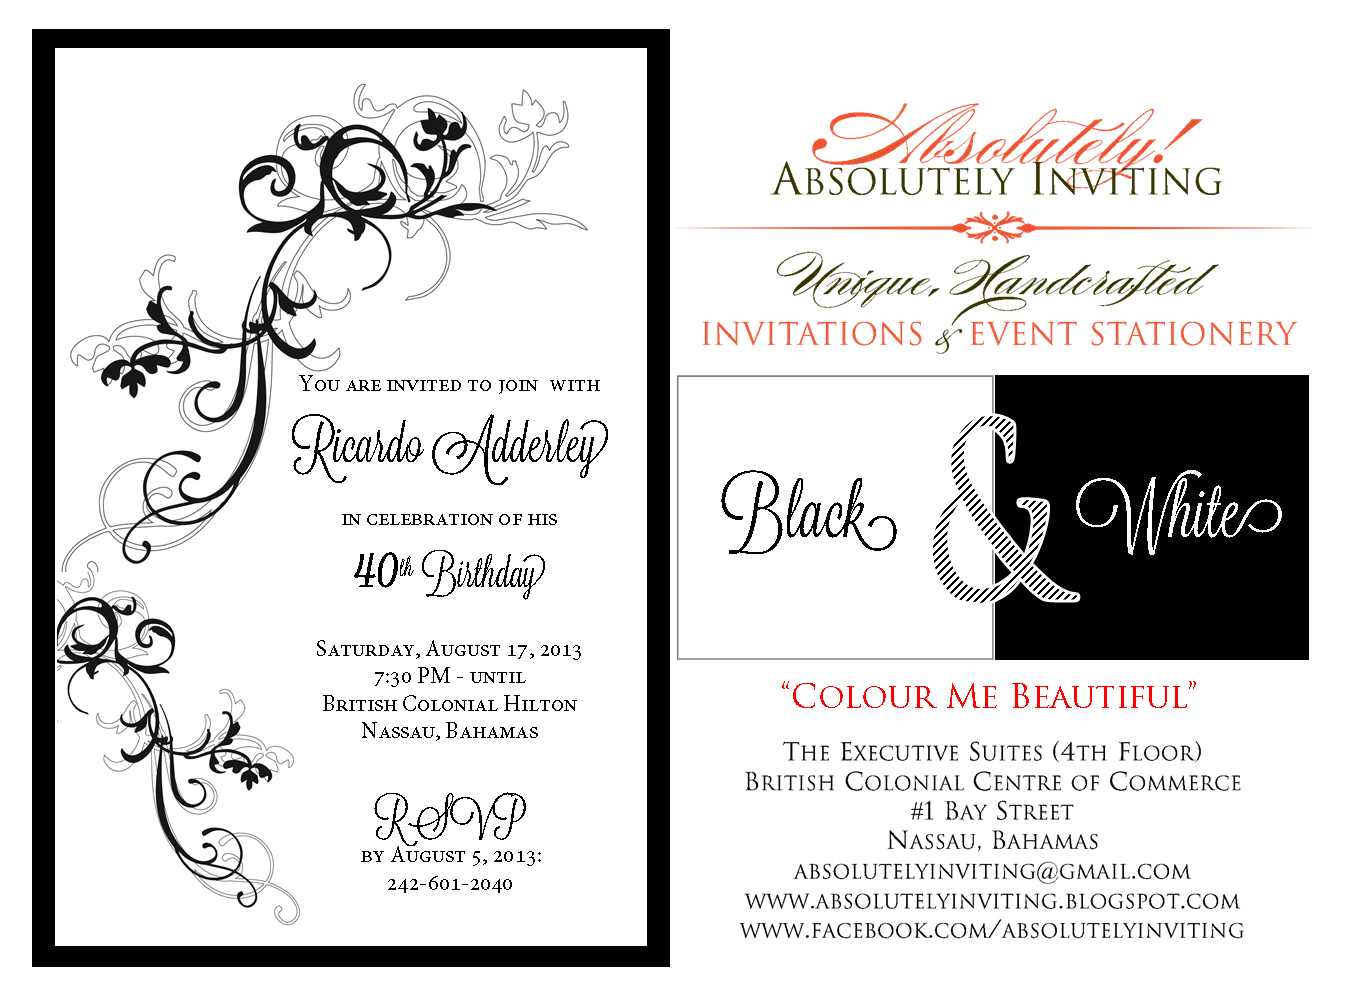 Absolutely Inviting! Unique, Handcrafted Invitations & Event ...